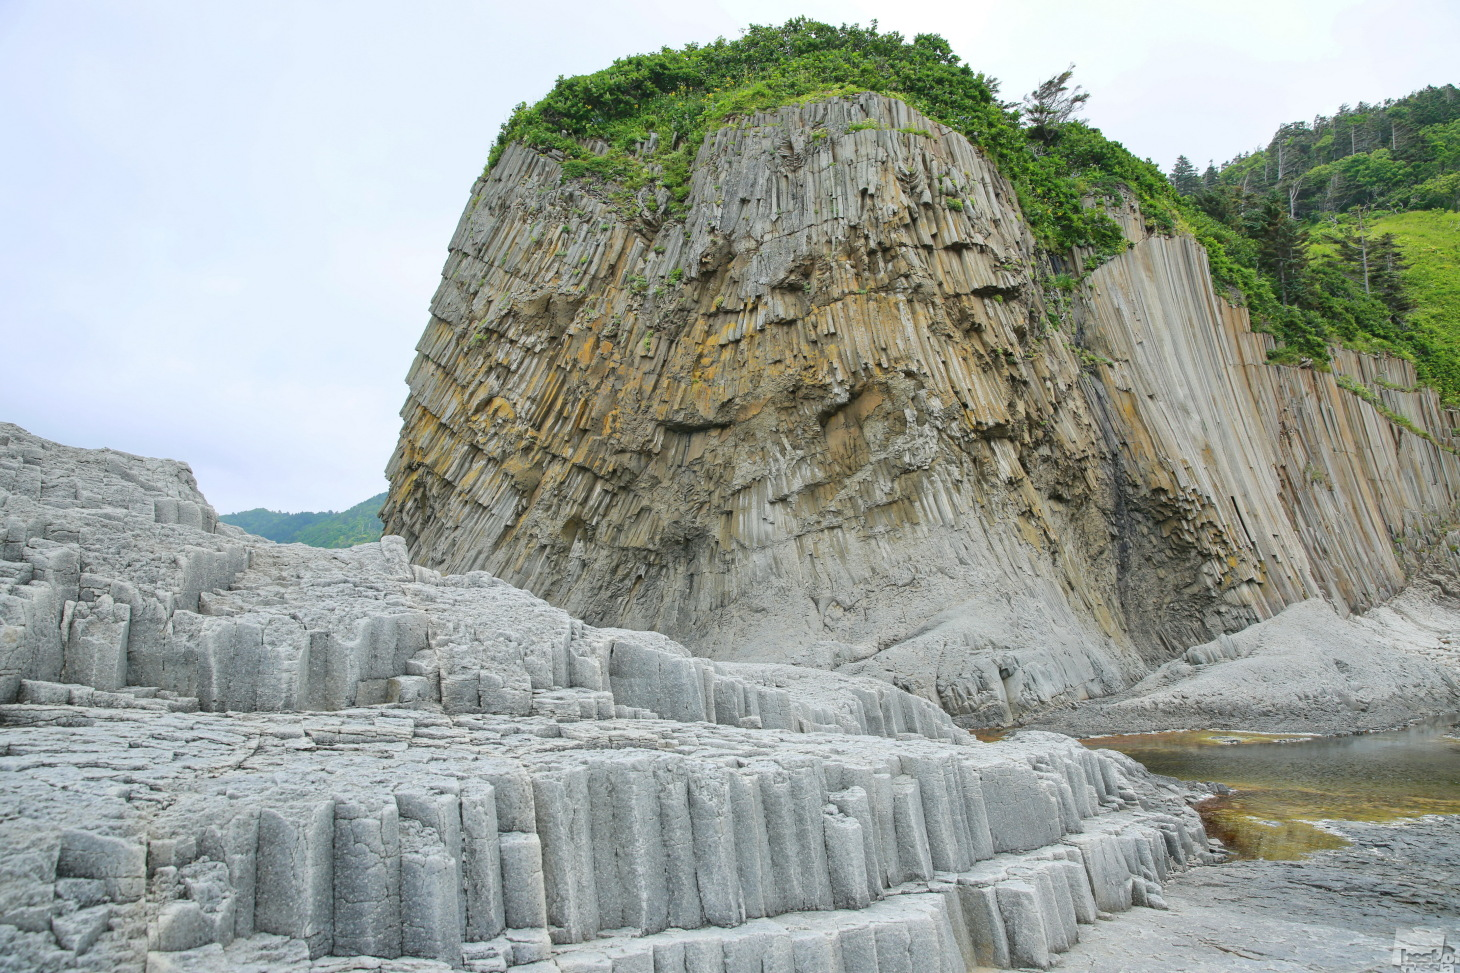 Cape Stolbchaty in the Kuril Islands. The natural columns resemble an amphitheater.